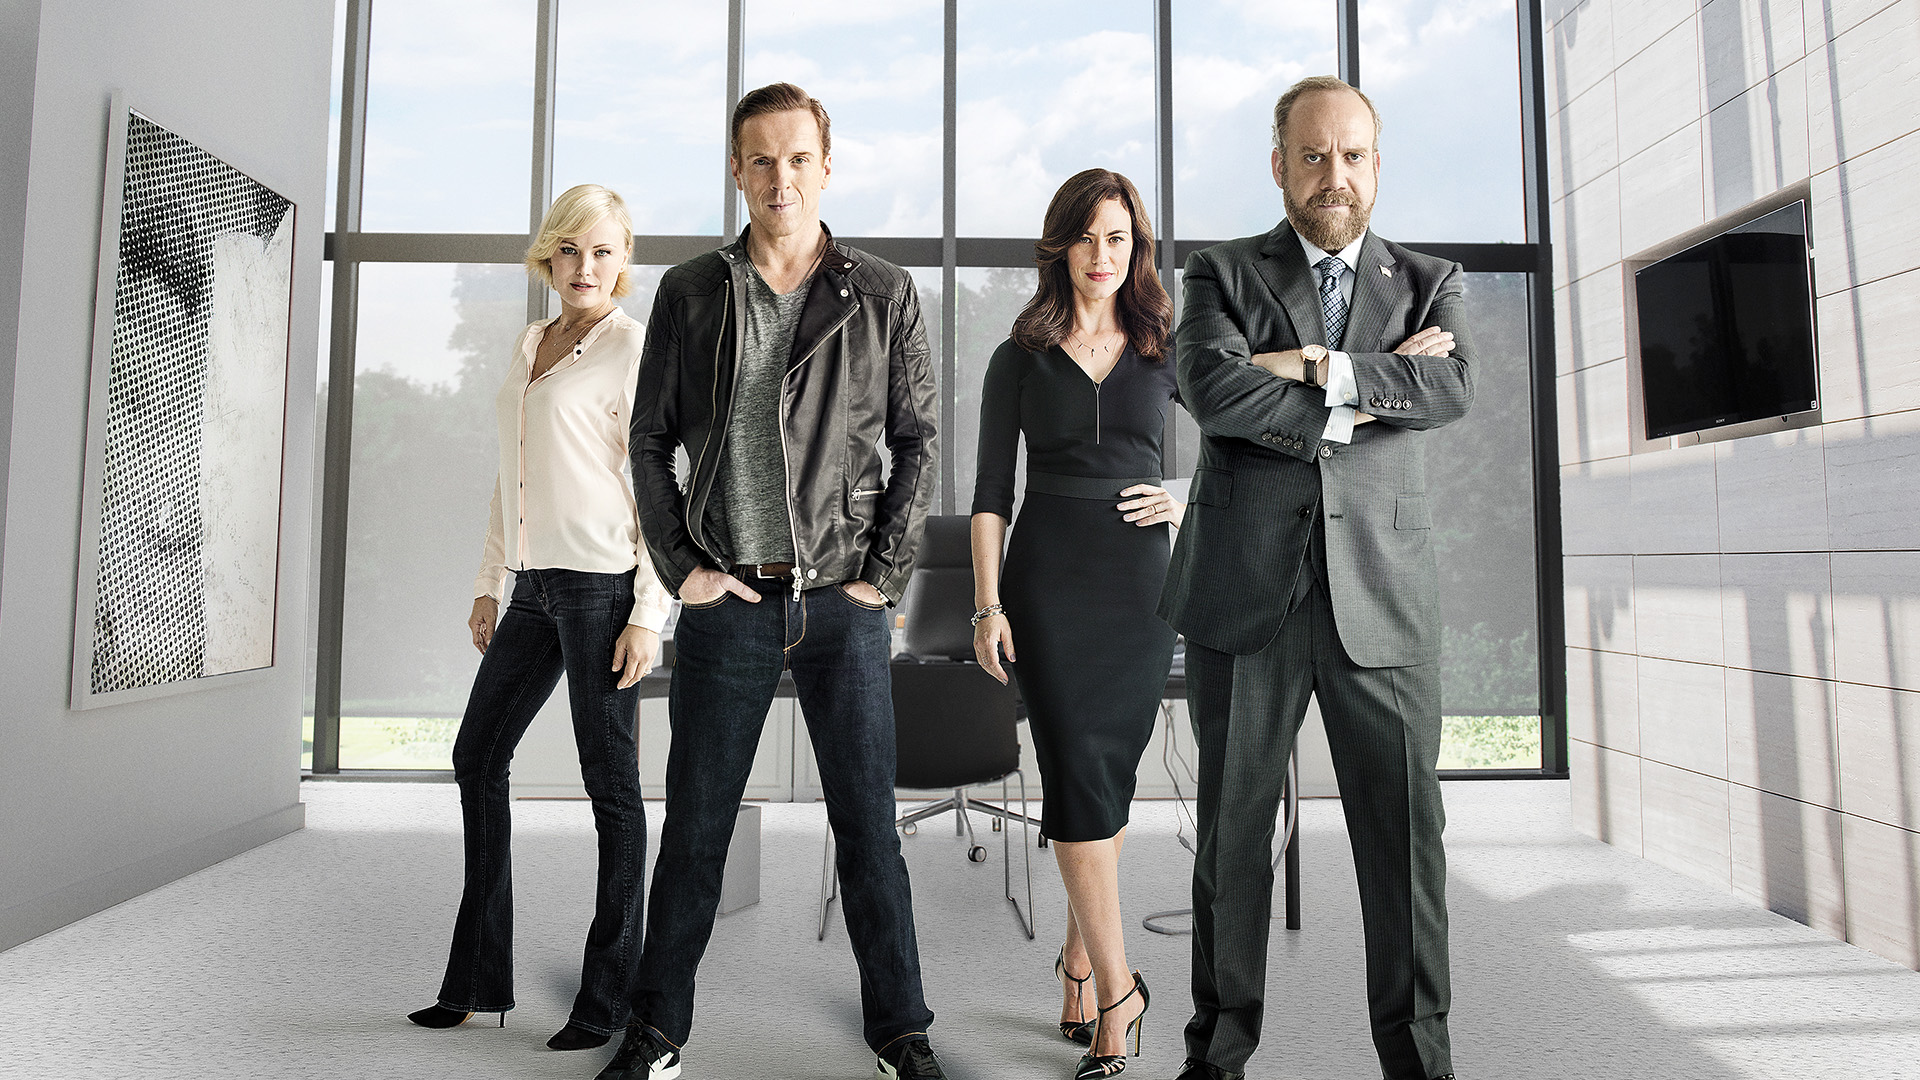 Casting news and release date for Billions